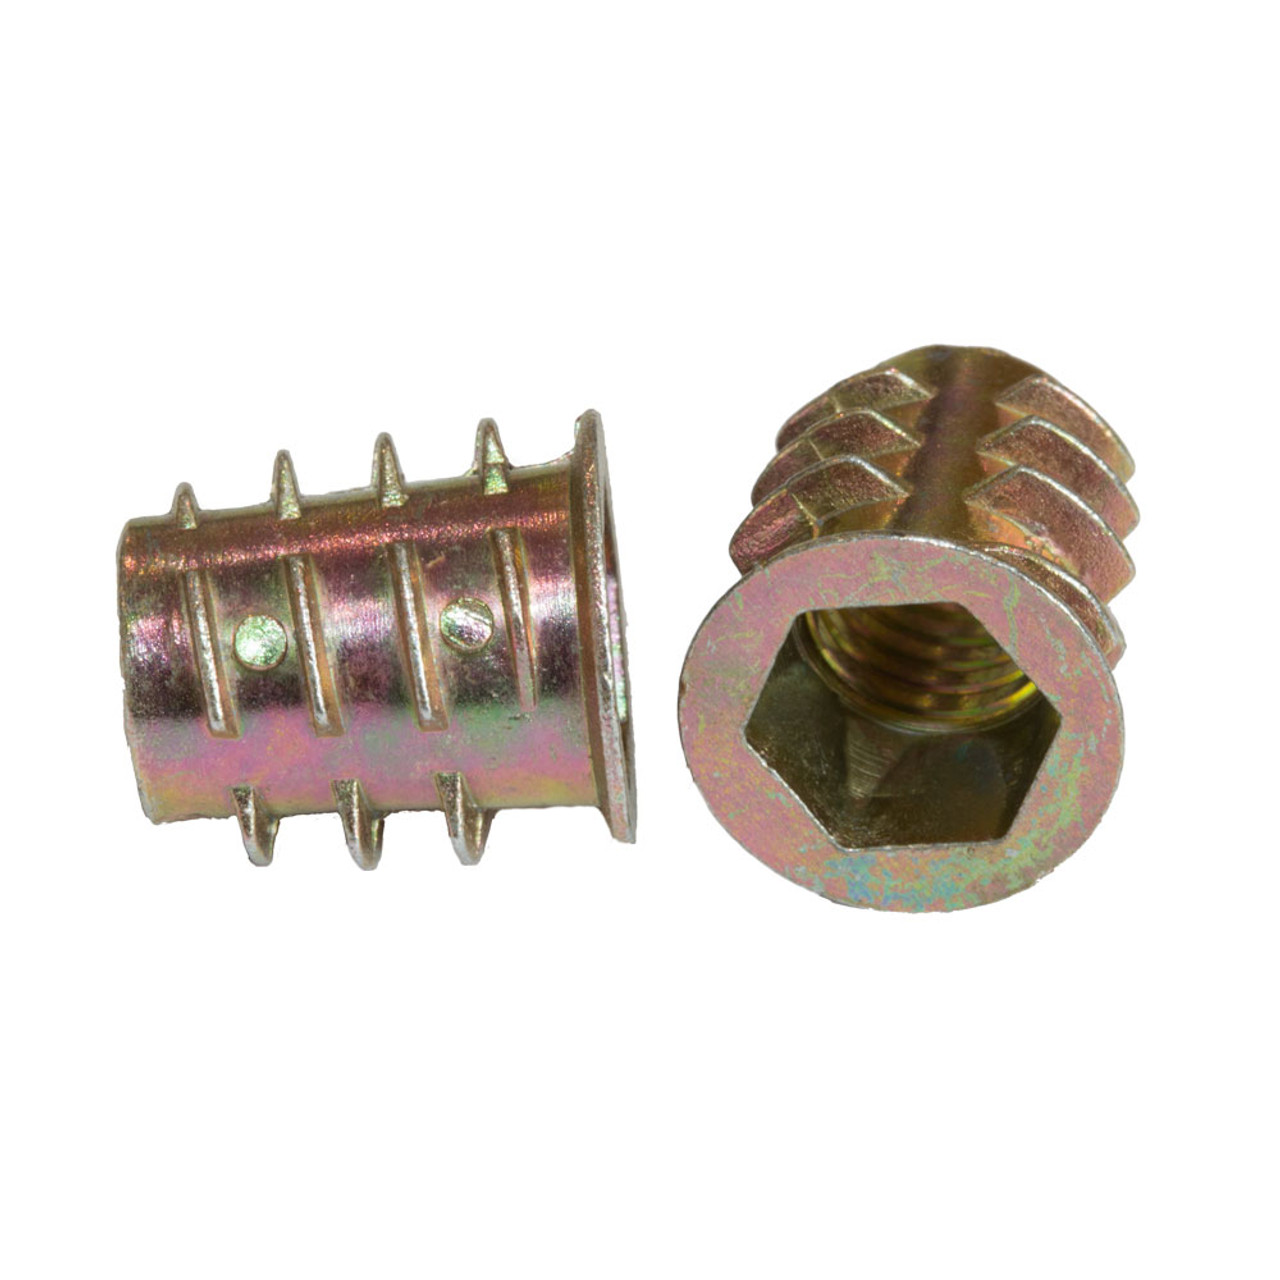 M10 THREADED HEX DRIVE FIXING TYPE D TIMBER WOOD INSERT FURNITURE NUTS FASTENERS